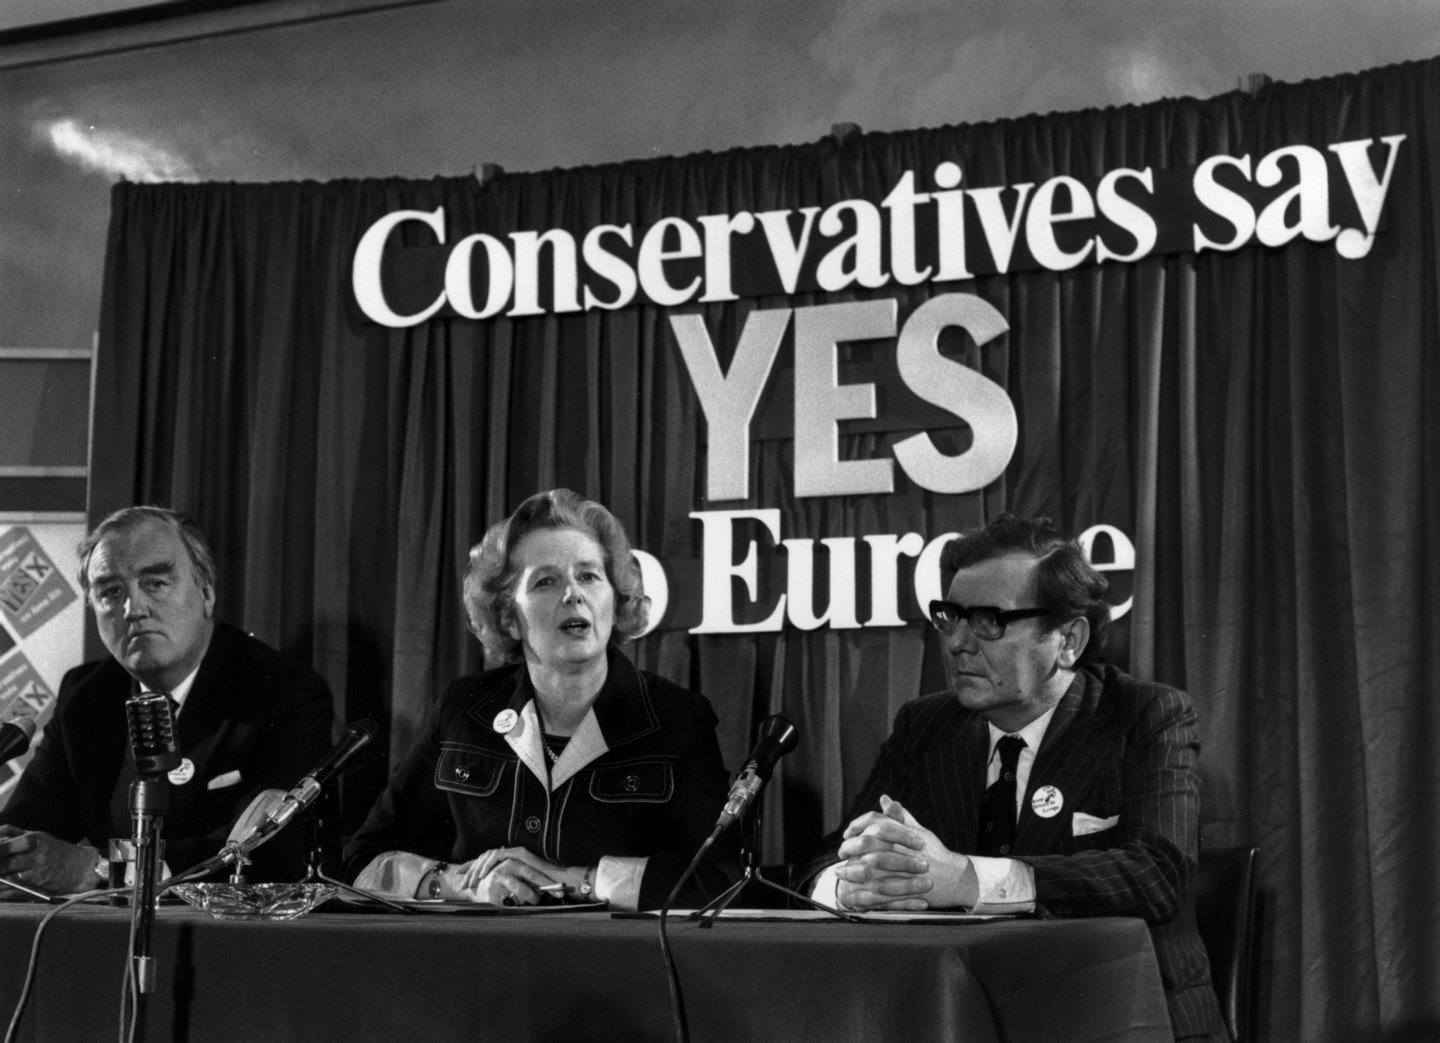 3rd June 1975: British conservative politician, Margaret Thatcher, with William Whitelaw and Peter Kirk at a referendum conference on Europe. (Photo by Keystone/Getty Images)